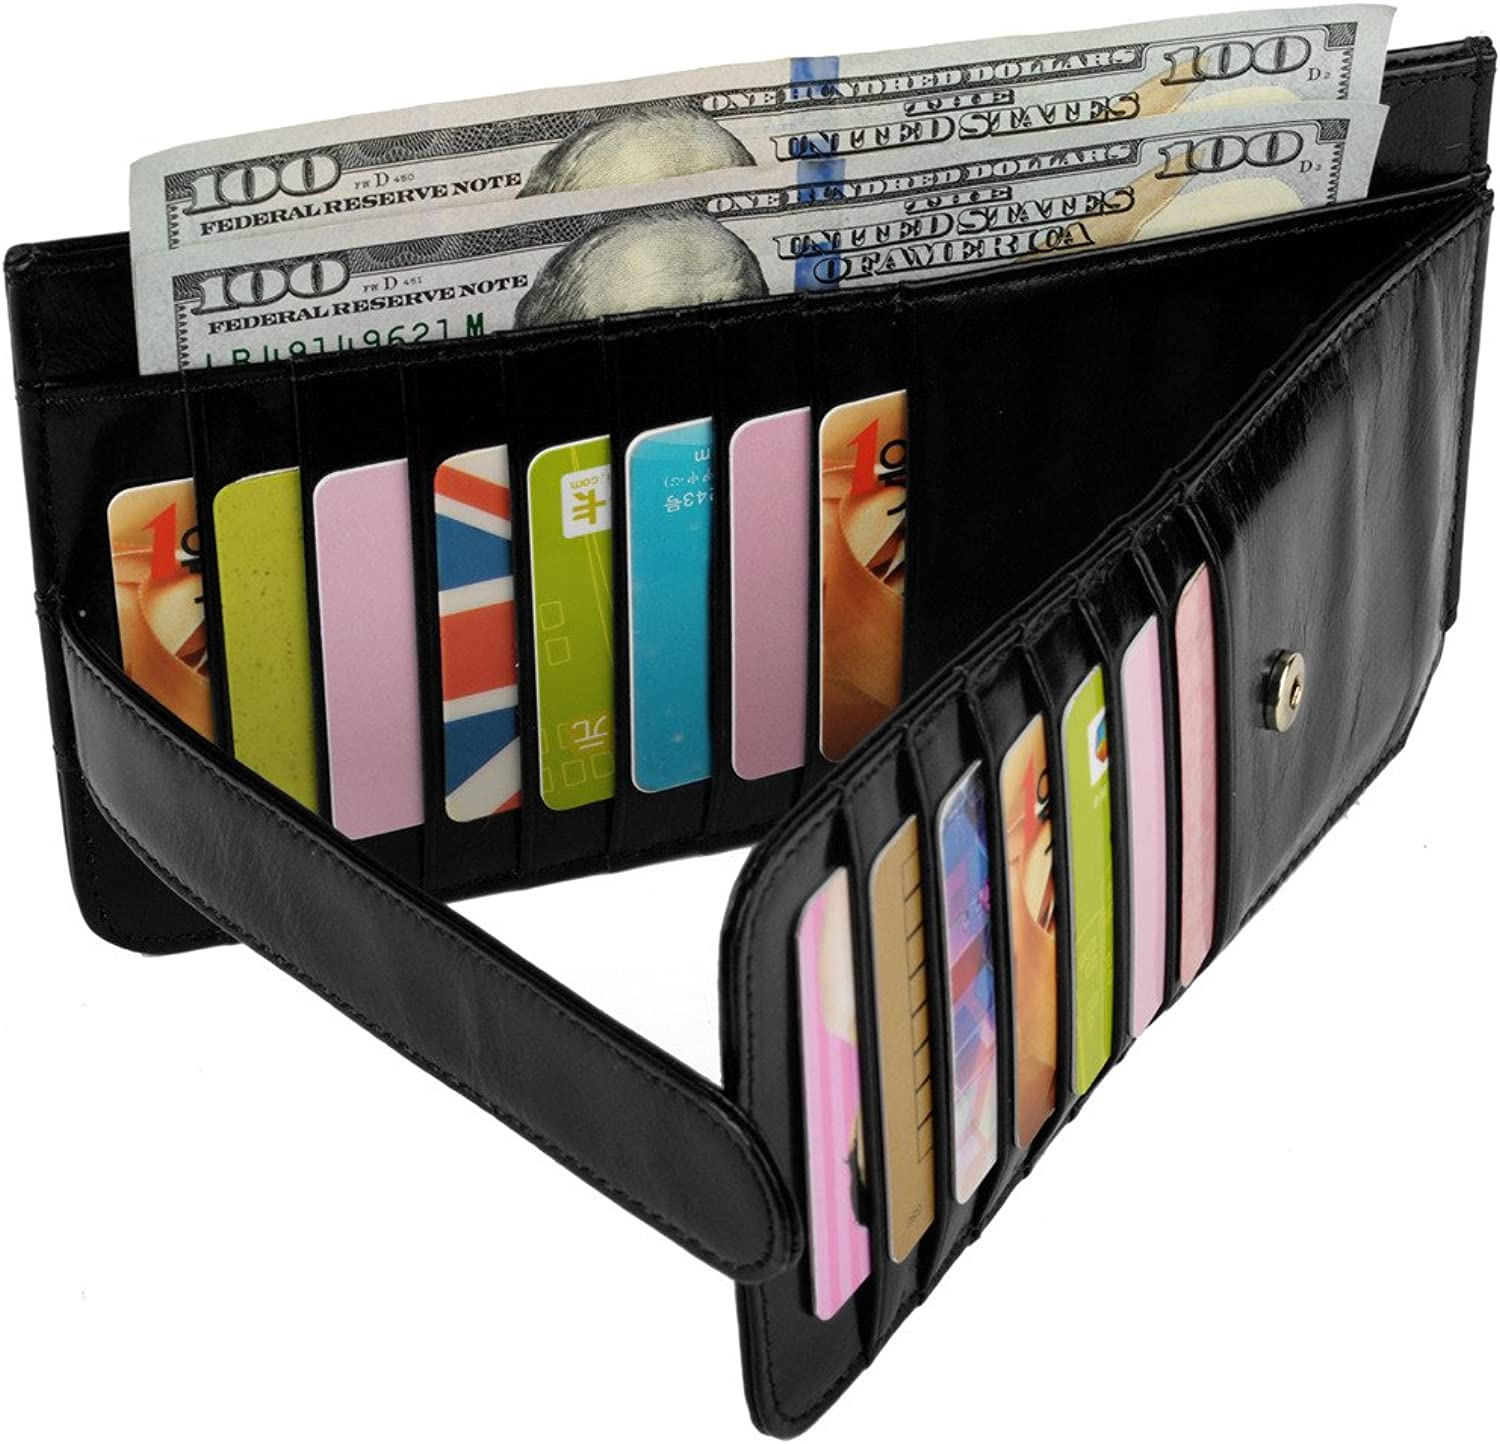 YALUXE Women's 22 Credit Card Case Slim Leather Wallet with Zipper Pocket